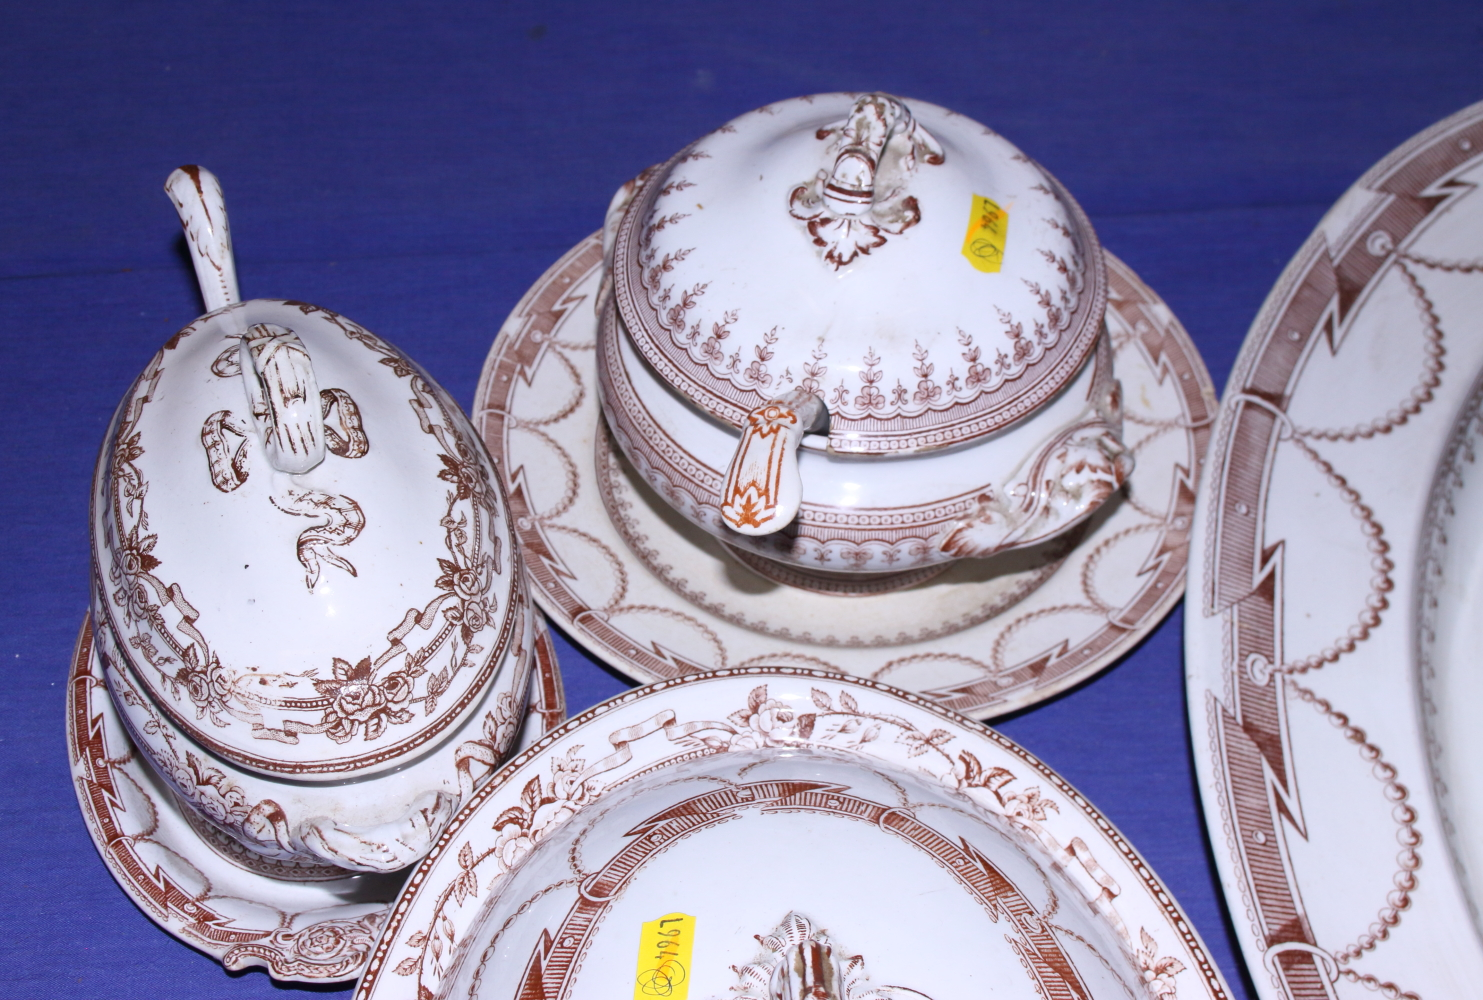 Lot 40 - A quantity of early 20th century china, including a turkey platter, tureens, ladles and under trays